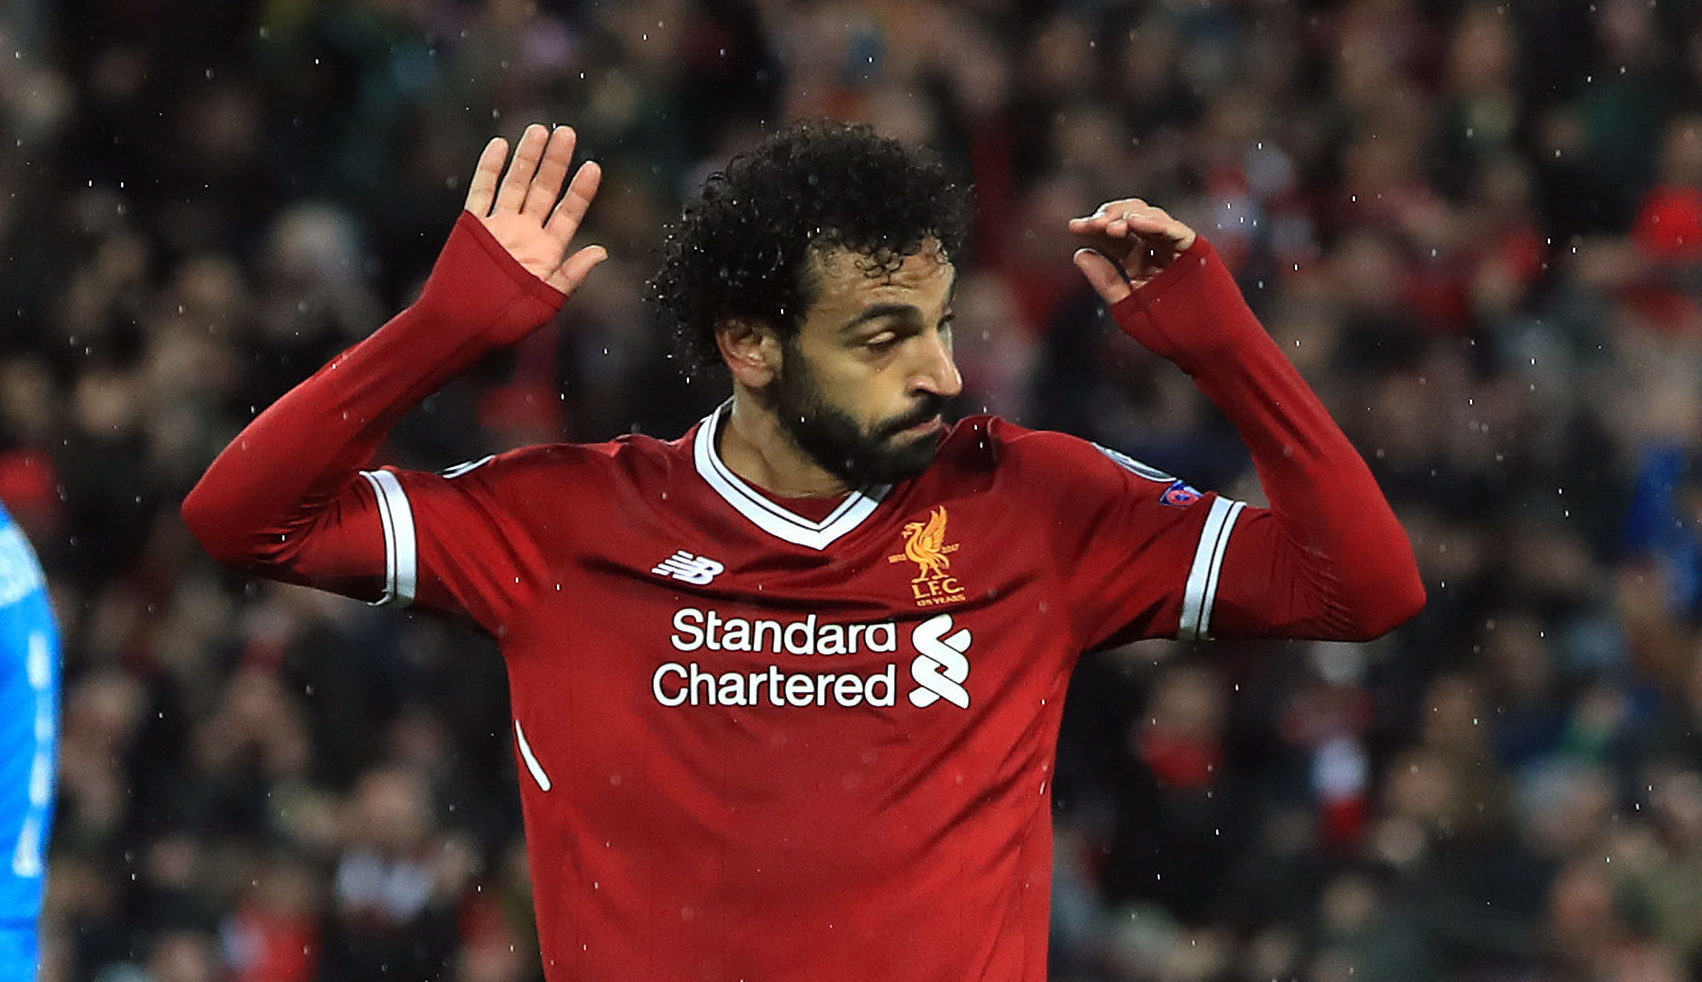 Liverpool's Mohamed Salah (Peter Byrne/PA Wire)